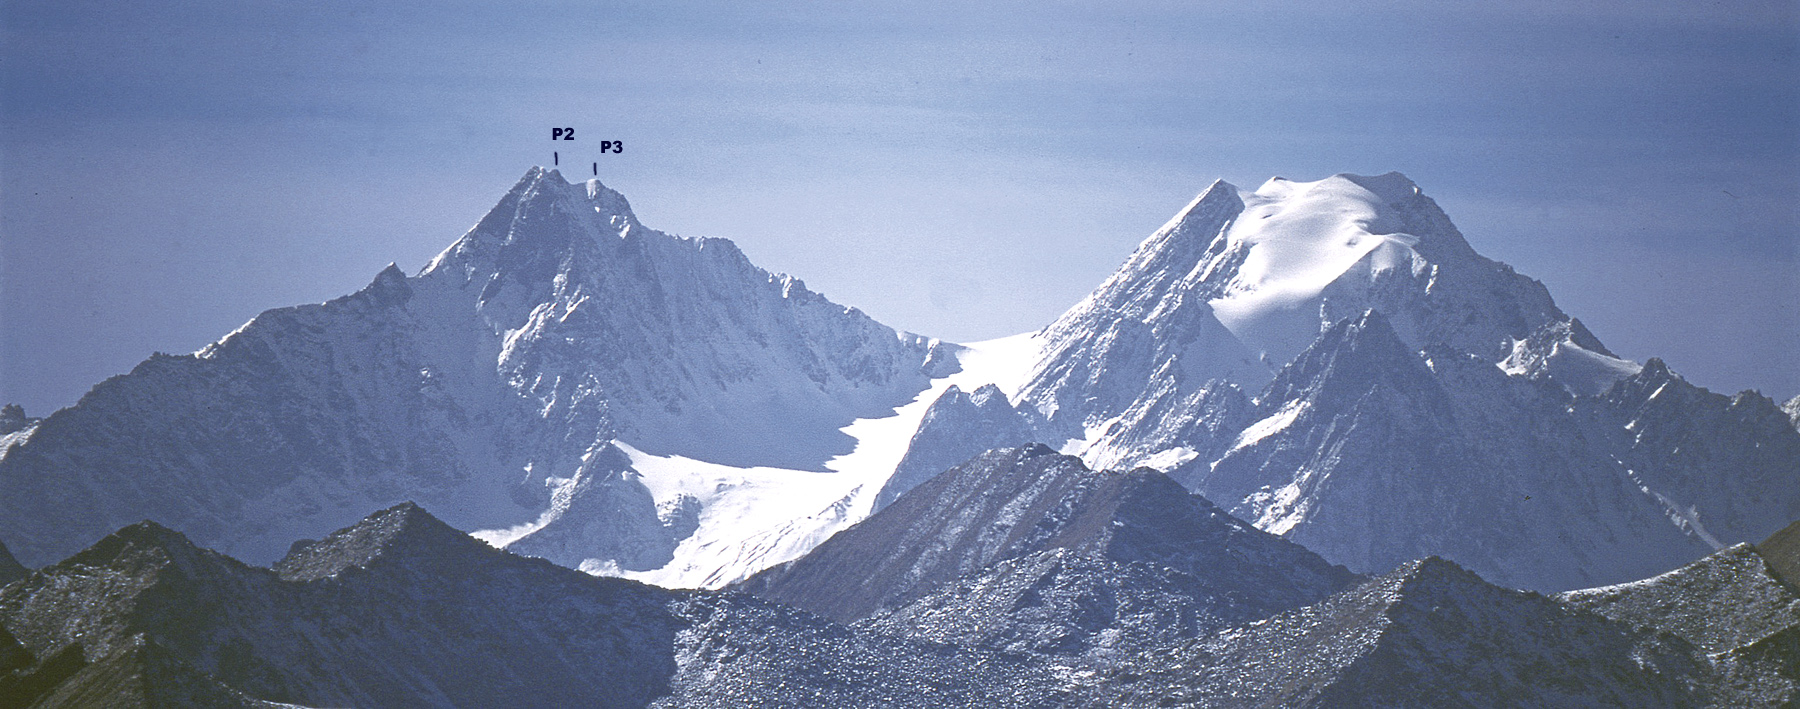 Xiaqiangla from the northeast. The summit to the right appears to be unspecified on maps, though another off picture to the right is marked as 5,240m. The north ridge attempt climbed from the broad snowy col between the two mountains. Peaks 2 and 3 on the north ridge are marked.